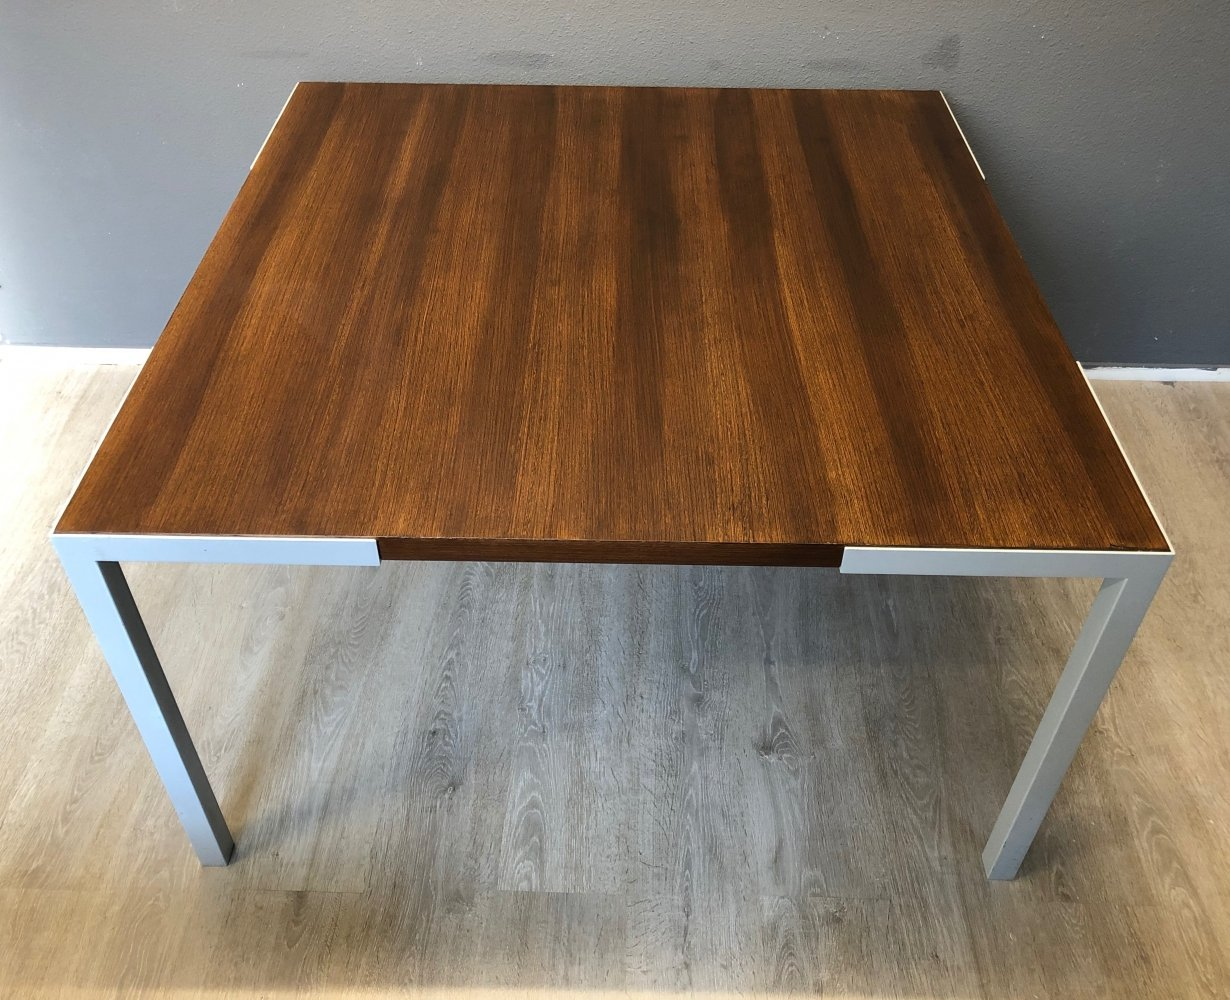 Wim den Boon dining table in Wenge wood & steel, 1960s